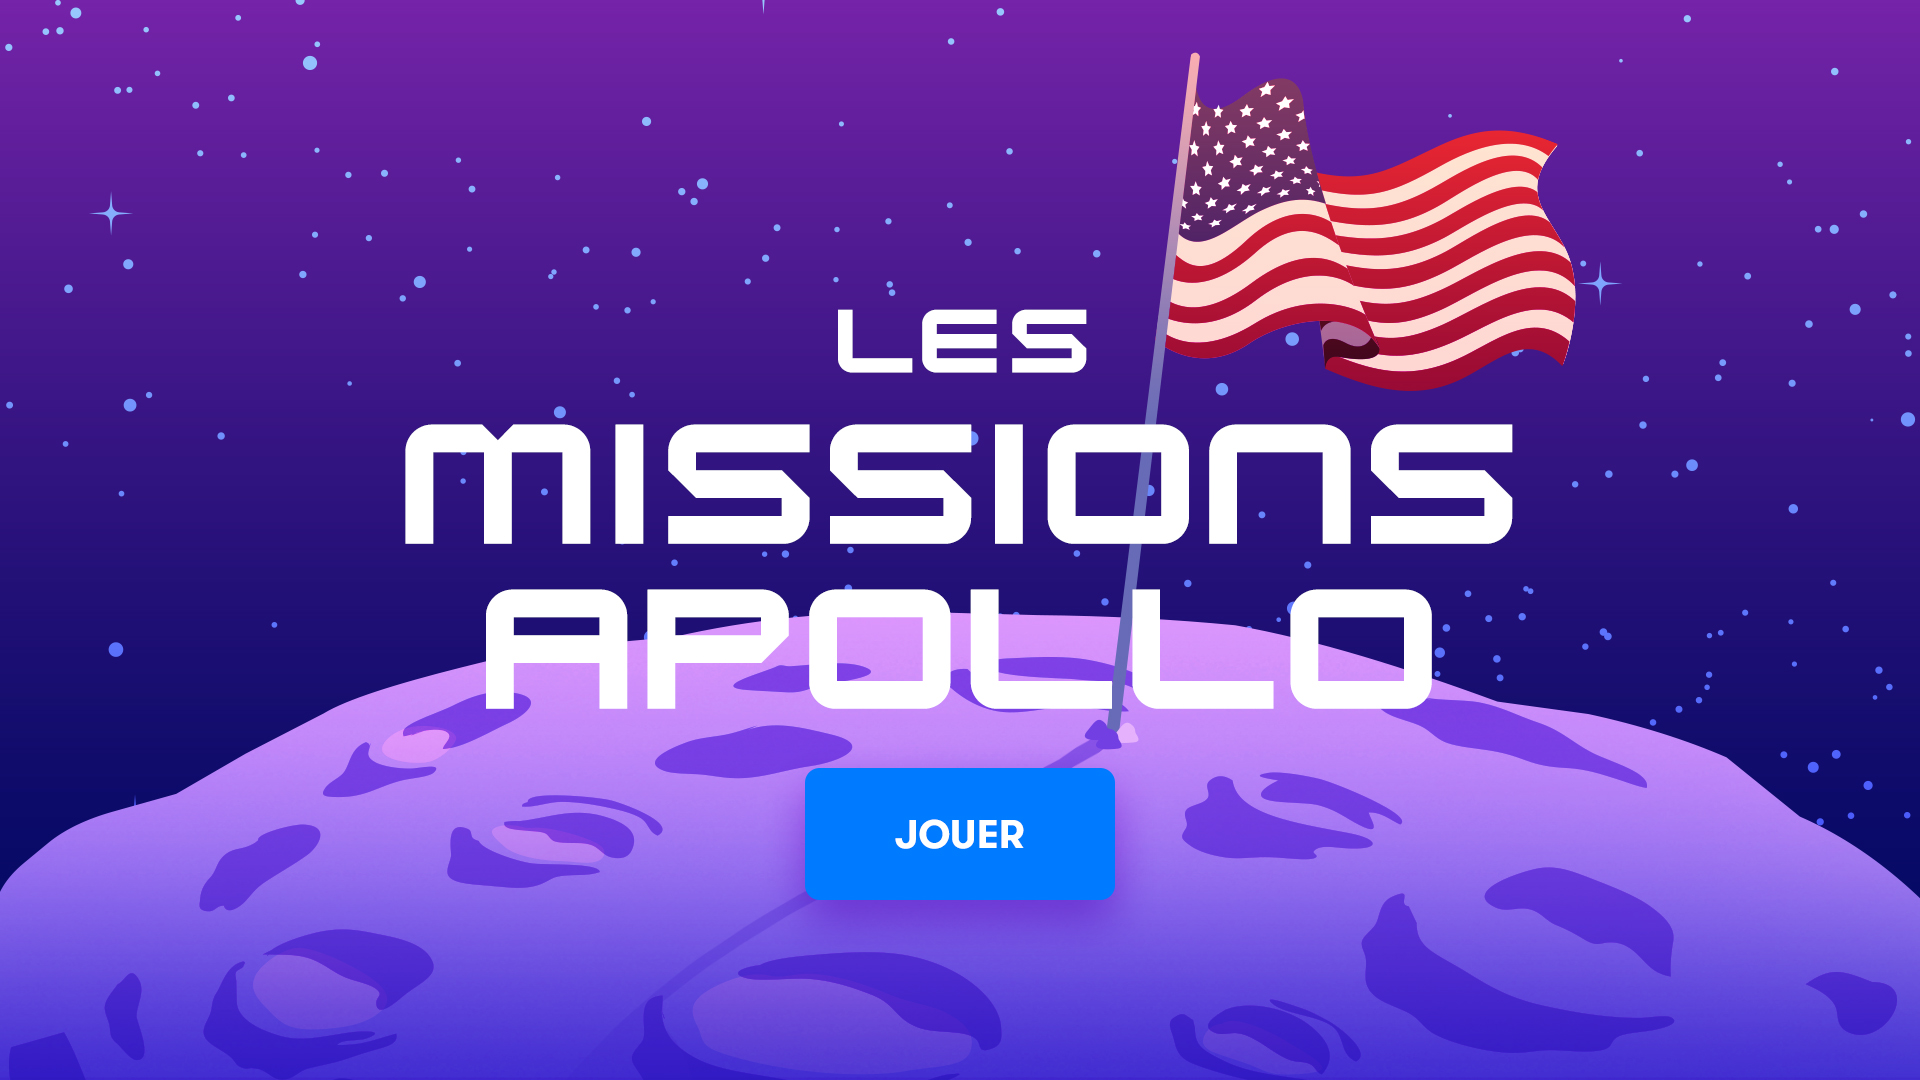 Les missions Apollo